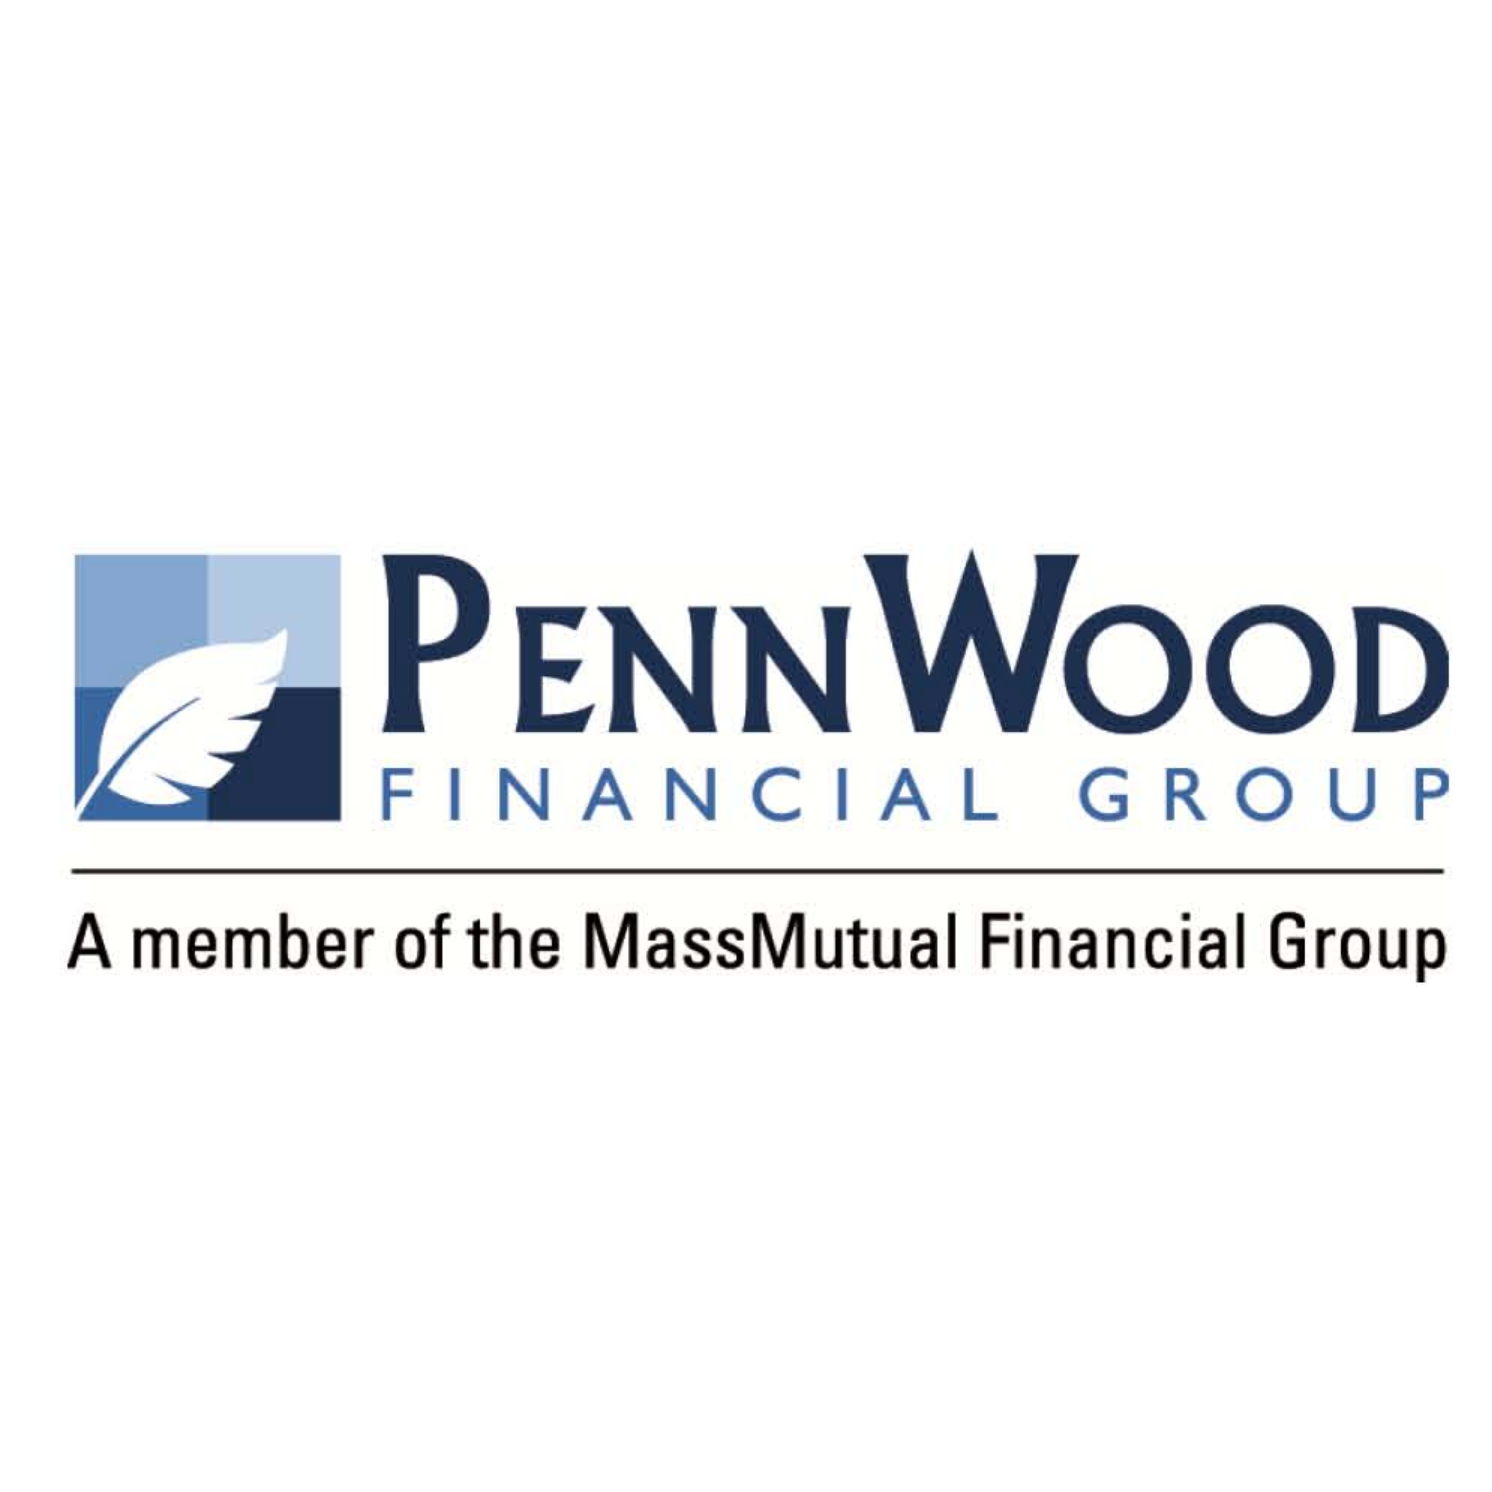 Pennwood Financial Group